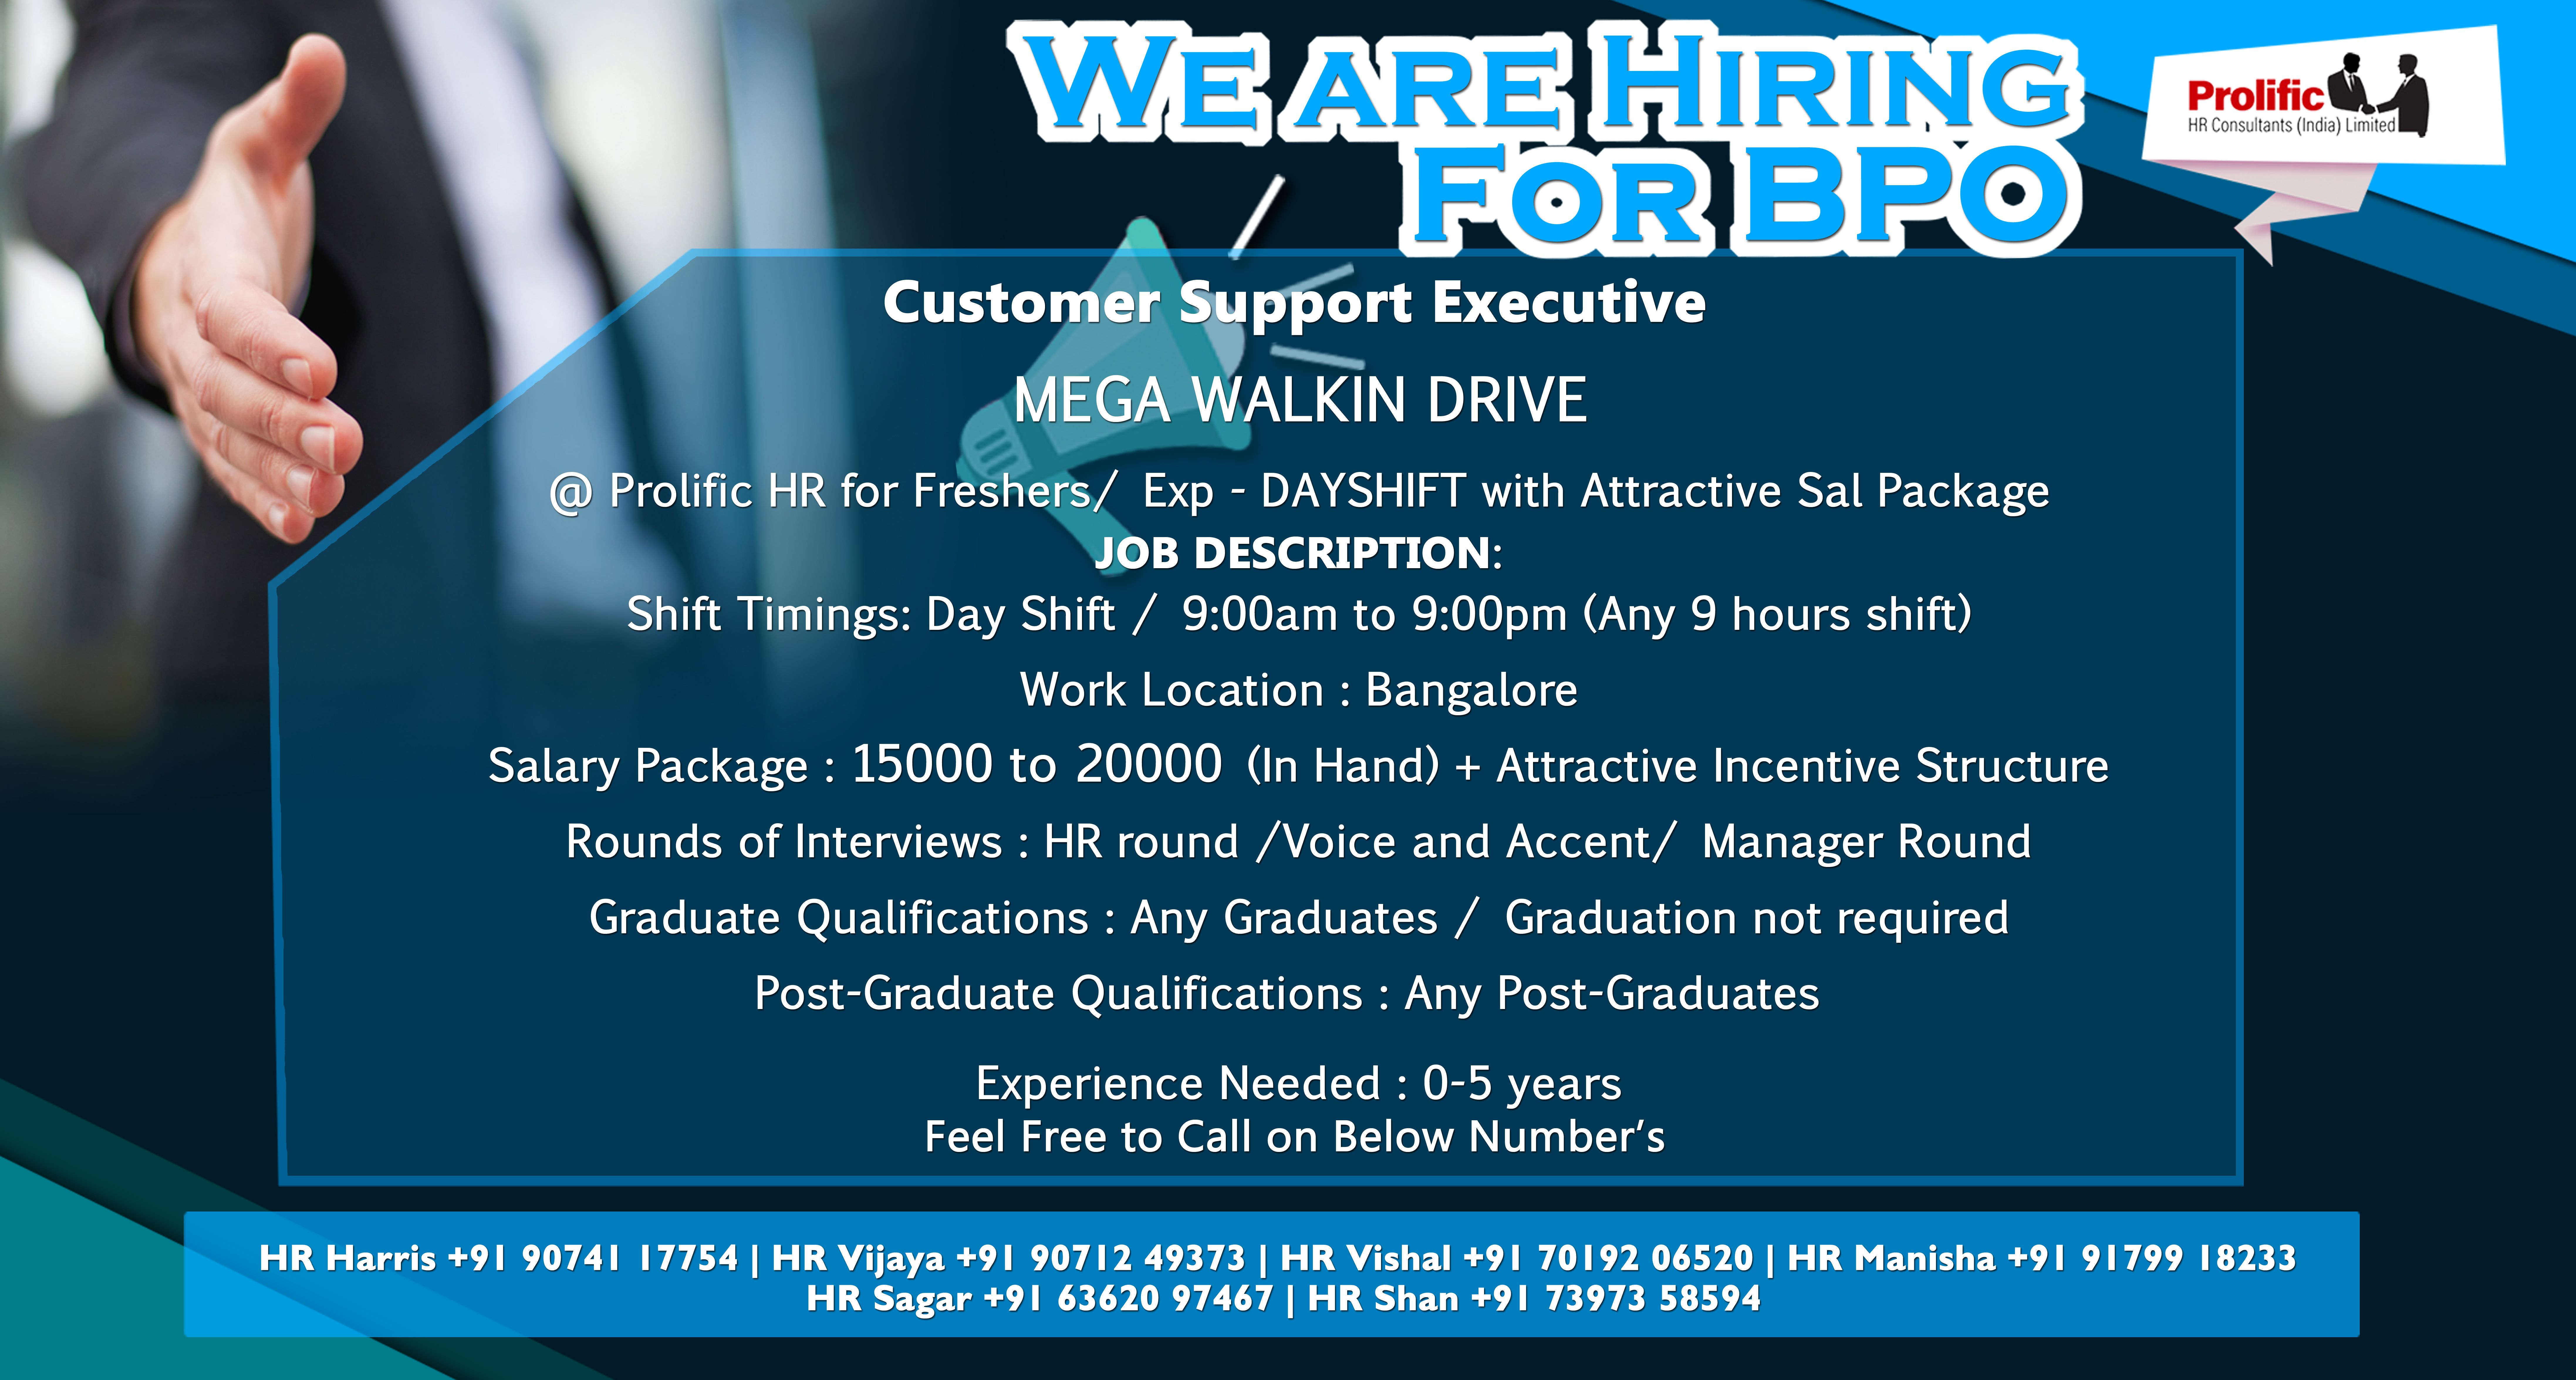 BPO jobs in Bangalore. Bpo, We are hiring, Job placement